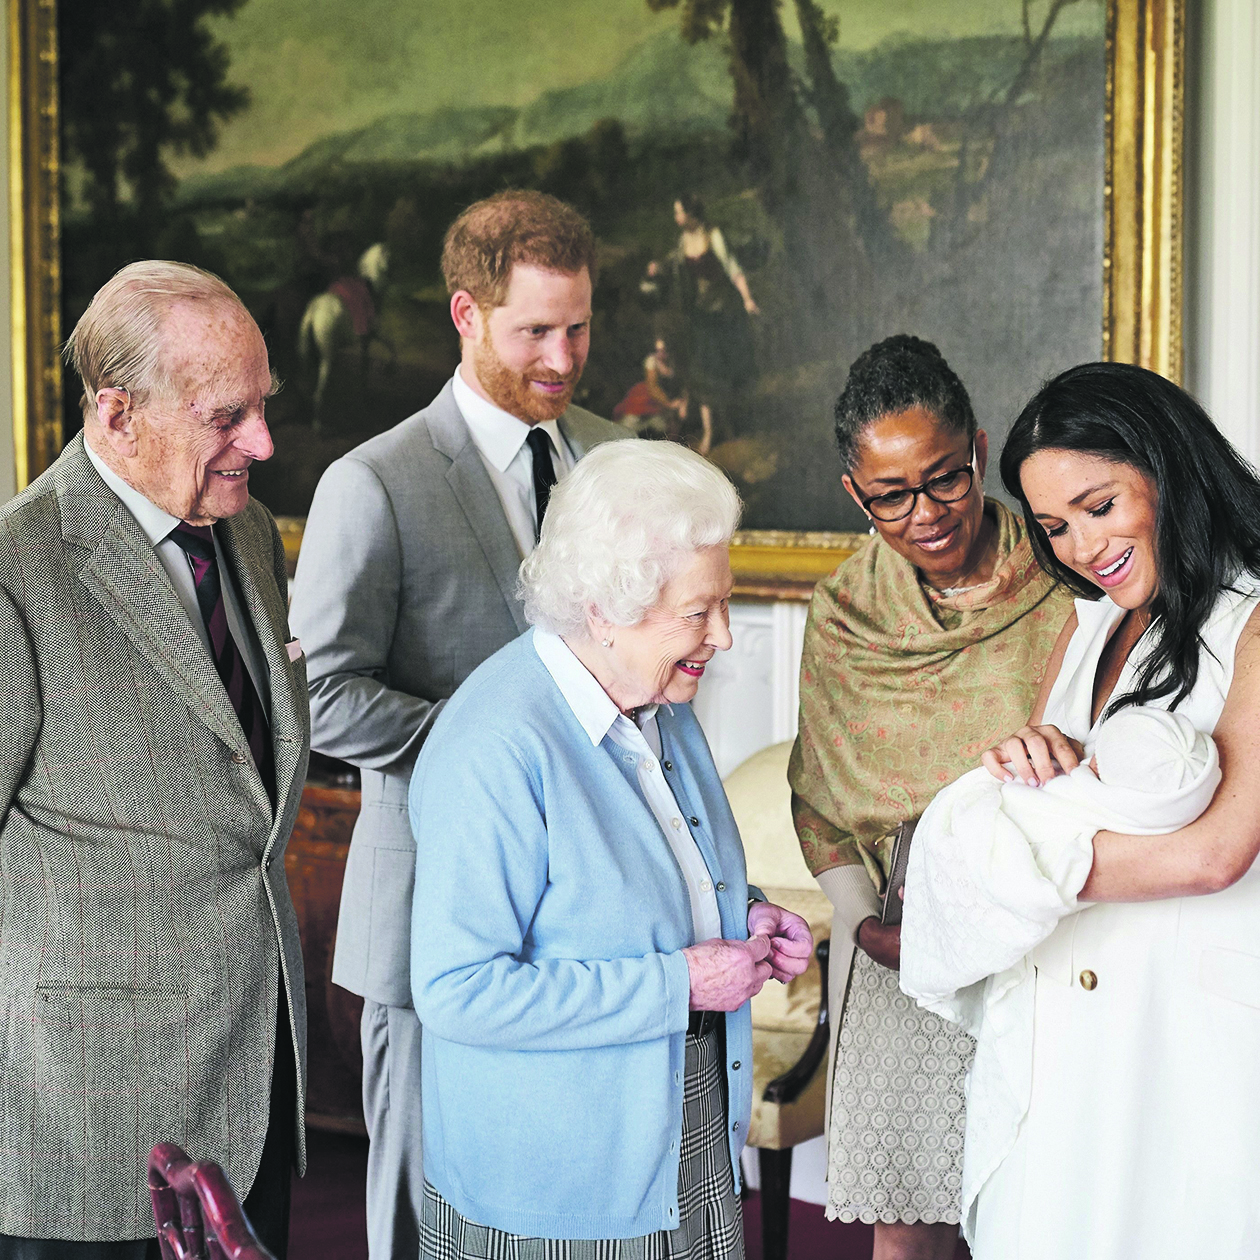 Britain's Prince Harry and Meghan, Duchess of Sussex are joined by her mother, Doria Ragland, as they show their new son, born on Monday and named as Archie Harrison Mountbatten-Windsor, to the Queen Elizabeth II and the Duke of Edinburgh at Windsor Castle, Britain May 8, 2019 in this image released on May 8, 2019.  Chris Allerton/Copyright SussexRoyal/Pool via REUTERS The photograph must not be digitally enhanced, manipulated or modified in any manner or form and must include all of the individuals in the photograph when published. NO COMMERCIAL OR BOOK SALES. NO SALES. NO RESALES. NO ARCHIVES. NOT FOR SALE FOR MARKETING OR ADVERTISING CAMPAIGNS. MANDATORY CREDIT .THIS IMAGE HAS BEEN SUPPLIED BY A THIRD PARTY. NO THIRD PARTY SALES. NOT FOR USE BY REUTERS THIRD PARTY DISTRIBUTORS. TEMPLATE OUT. NEWS EDITORIAL USE ONLY. NO COMMERCIAL USE. NO MERCHANDISING, ADVERTISING, SOUVENIRS, MEMORABILIA OR COLOURABLY SIMILAR. NOT FOR USE AFTER FRIDAY JUNE 7, 2019 WITHOUT PRIOR PERMISSION FROM KENSINGTON PALACE.